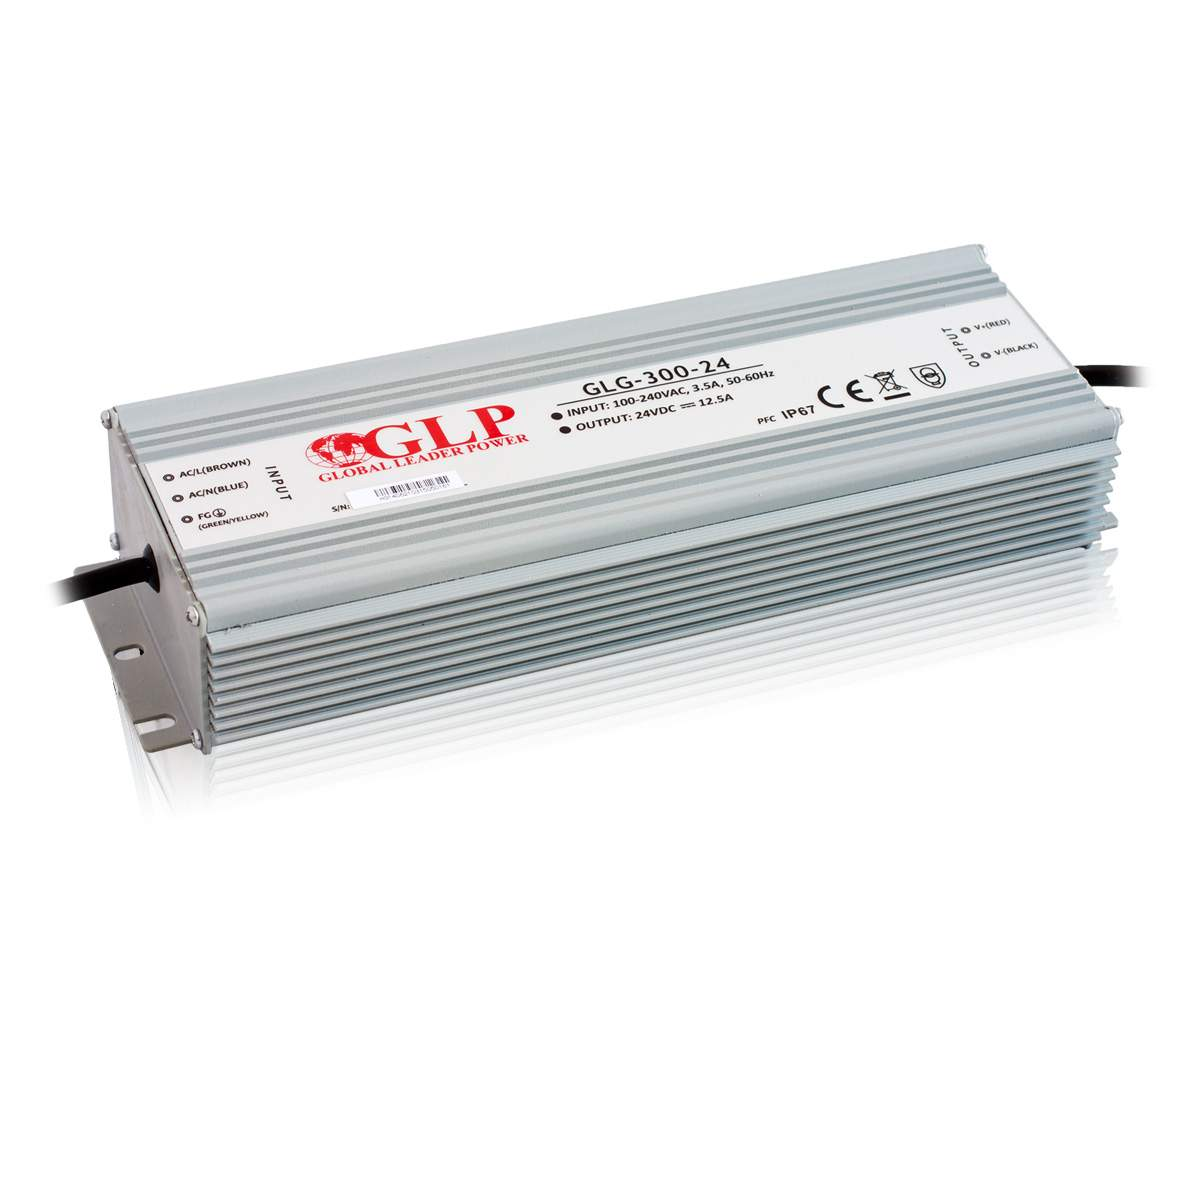 LED Toiteplokk GLP POWER 24V GLG-300-24  300W  IP67